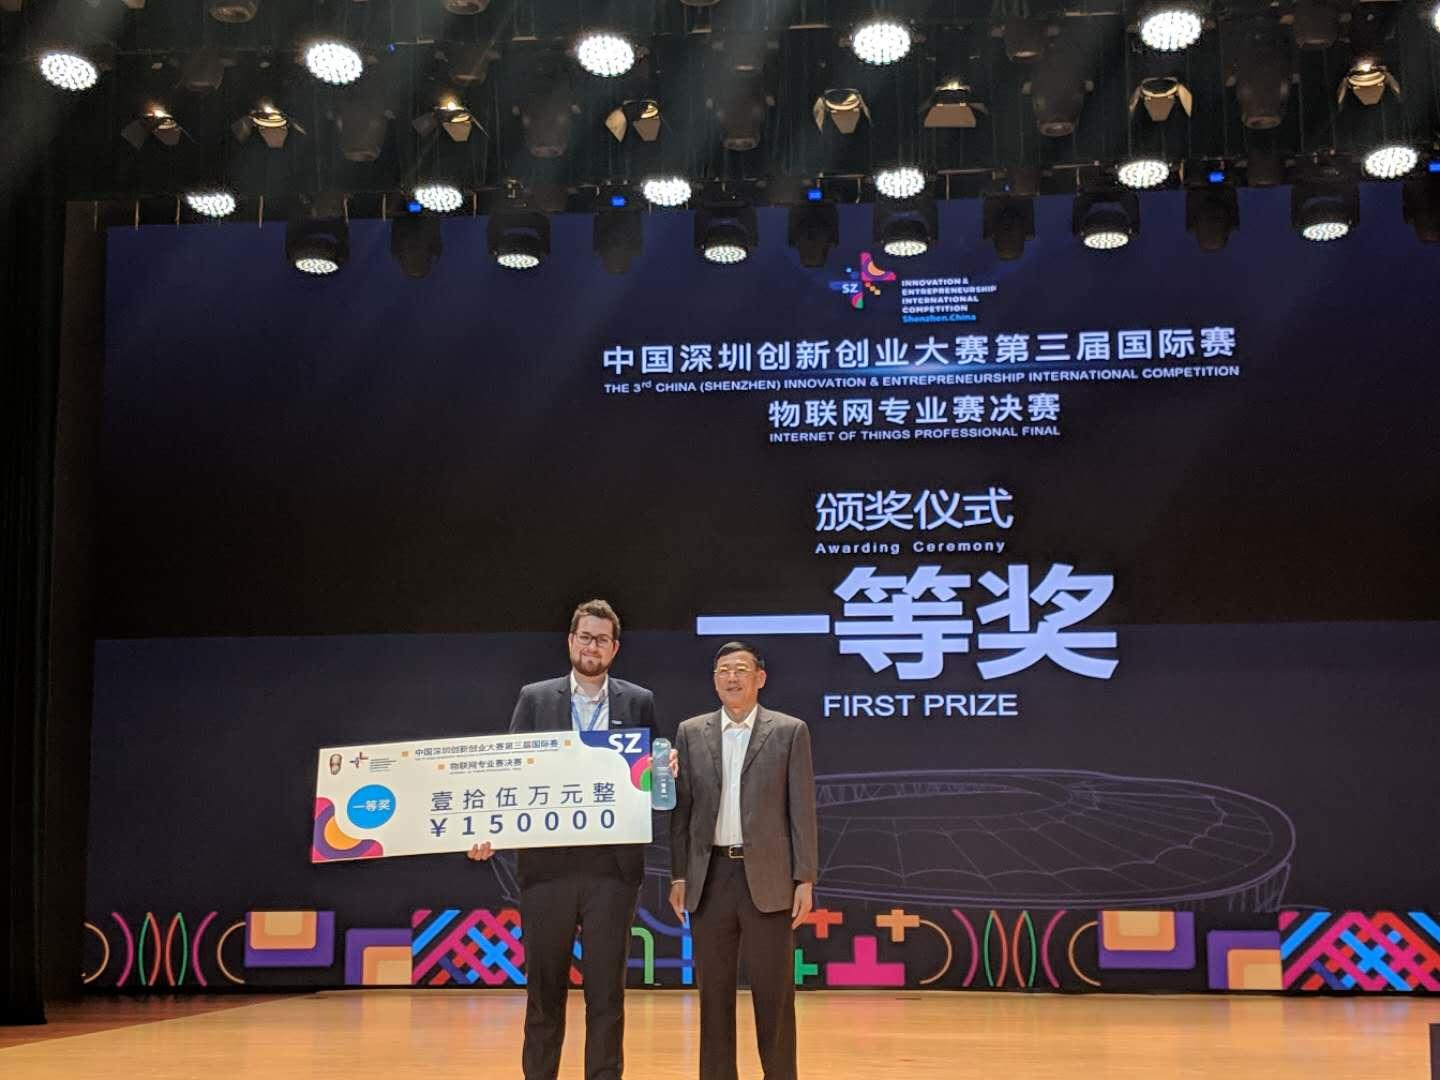 Nicholas Burgwin receives award for Fibos at the 3rd China (Shenzhen) Innovation & Entrepreneurship International Competitio